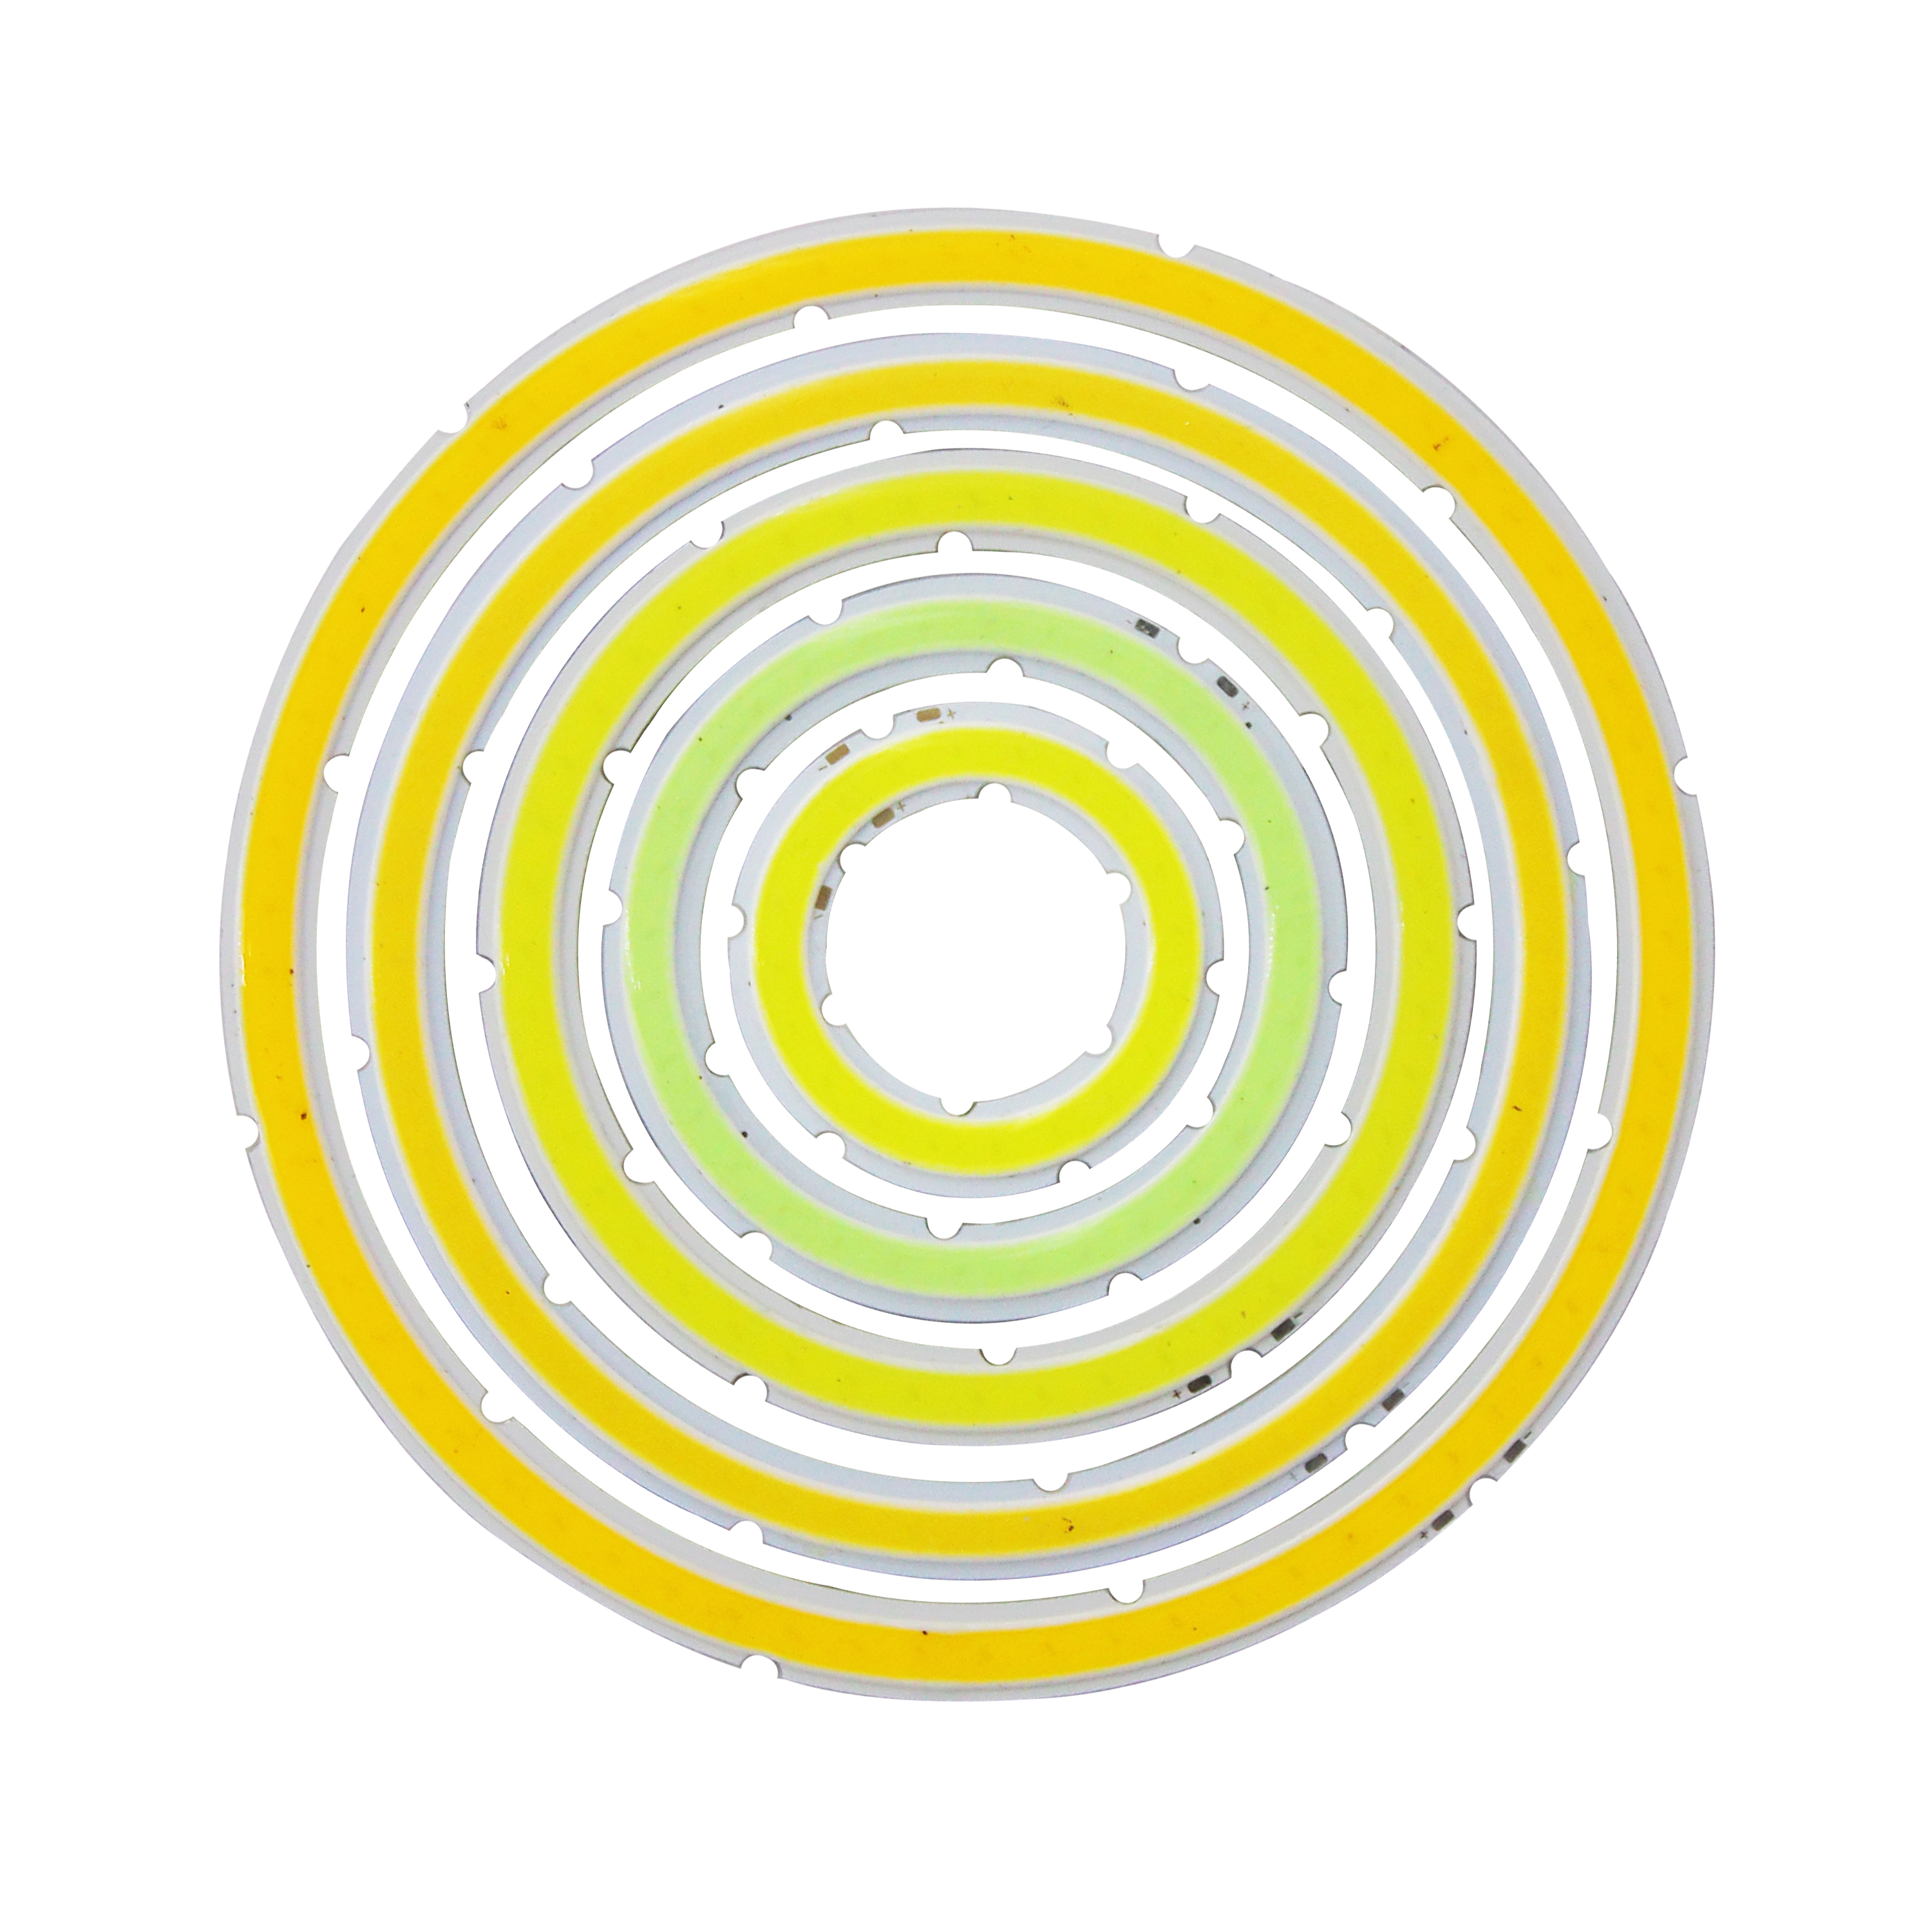 <font><b>12V</b></font> DC annular cob <font><b>led</b></font> light source ring shape 10W 15w angle eye 30mm 120mm Warm cold white Ice blue cob chip for DIY lamp image